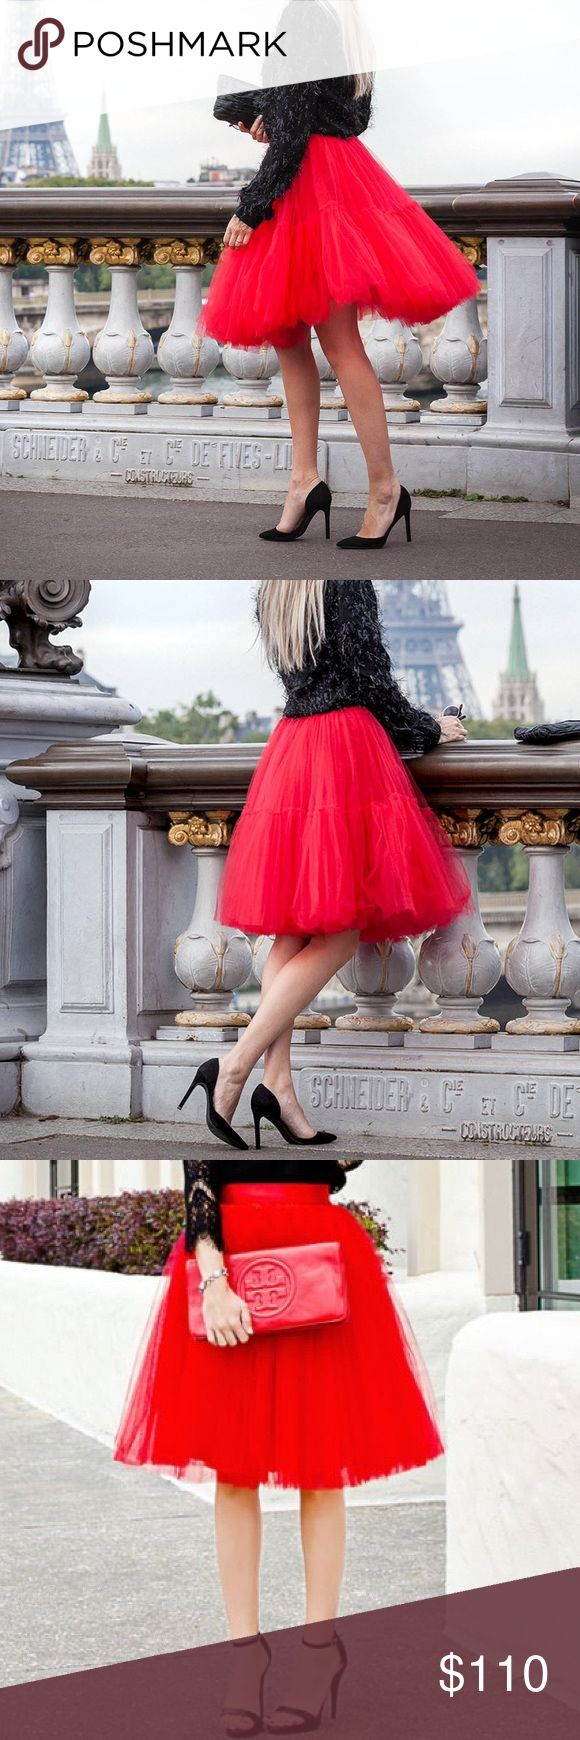 """Valentine Red Tulle Skirt Coming Soon. Red Valentine tulle skirt. Perfect for proms, bridal showers, photoshoots or a day out. Features 4 layers of tulle. 25"""" length.    Measurements  S: Waist- 25"""" (size 0-2) M: Waist- 27.5"""" (size 2-4) L: Waist- 29"""" (size 4-6) XL: Waist- 30.5"""" (size 6-8)  ✨""""Buy Now"""" or """"Add to Bundle"""" to purchase✨ Jennifer's Chic Boutique Skirts Midi"""